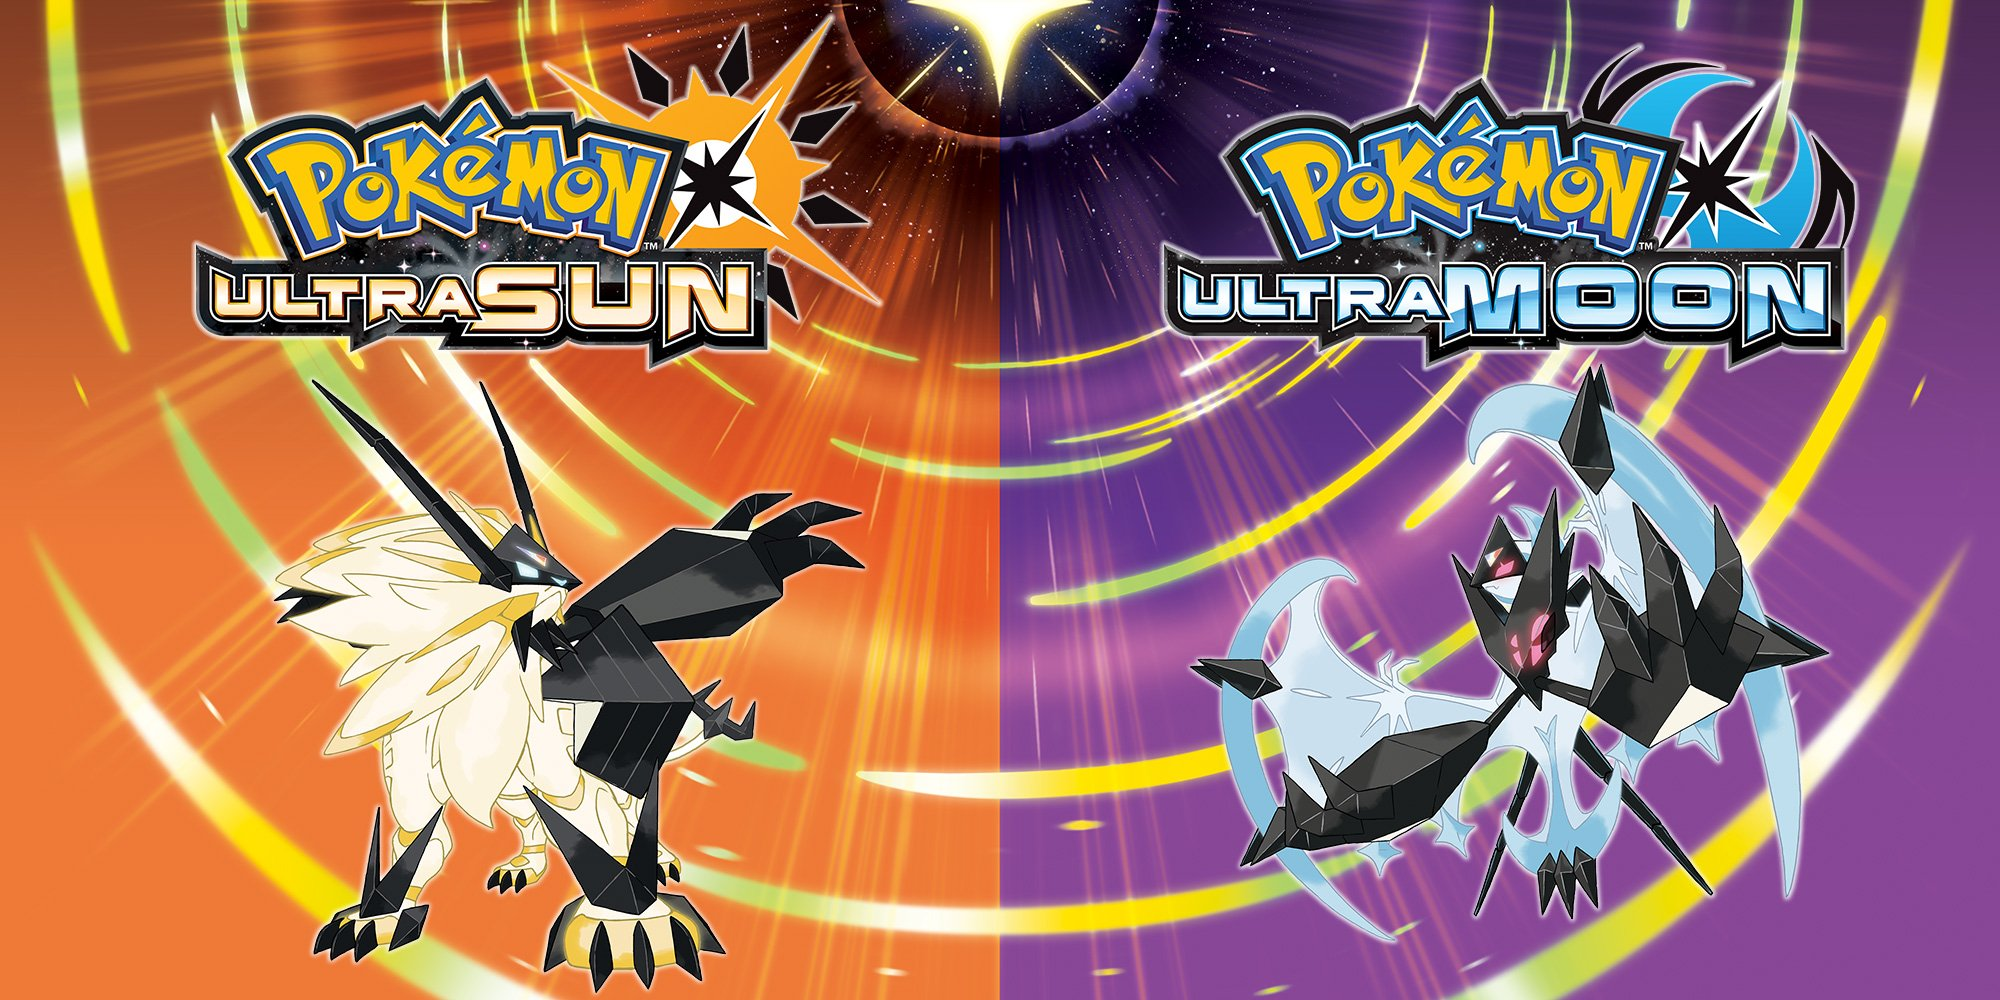 Pokémon Ultra Sun, Pokémon Ultra Moon, 3DS, Nintendo, Game Freak